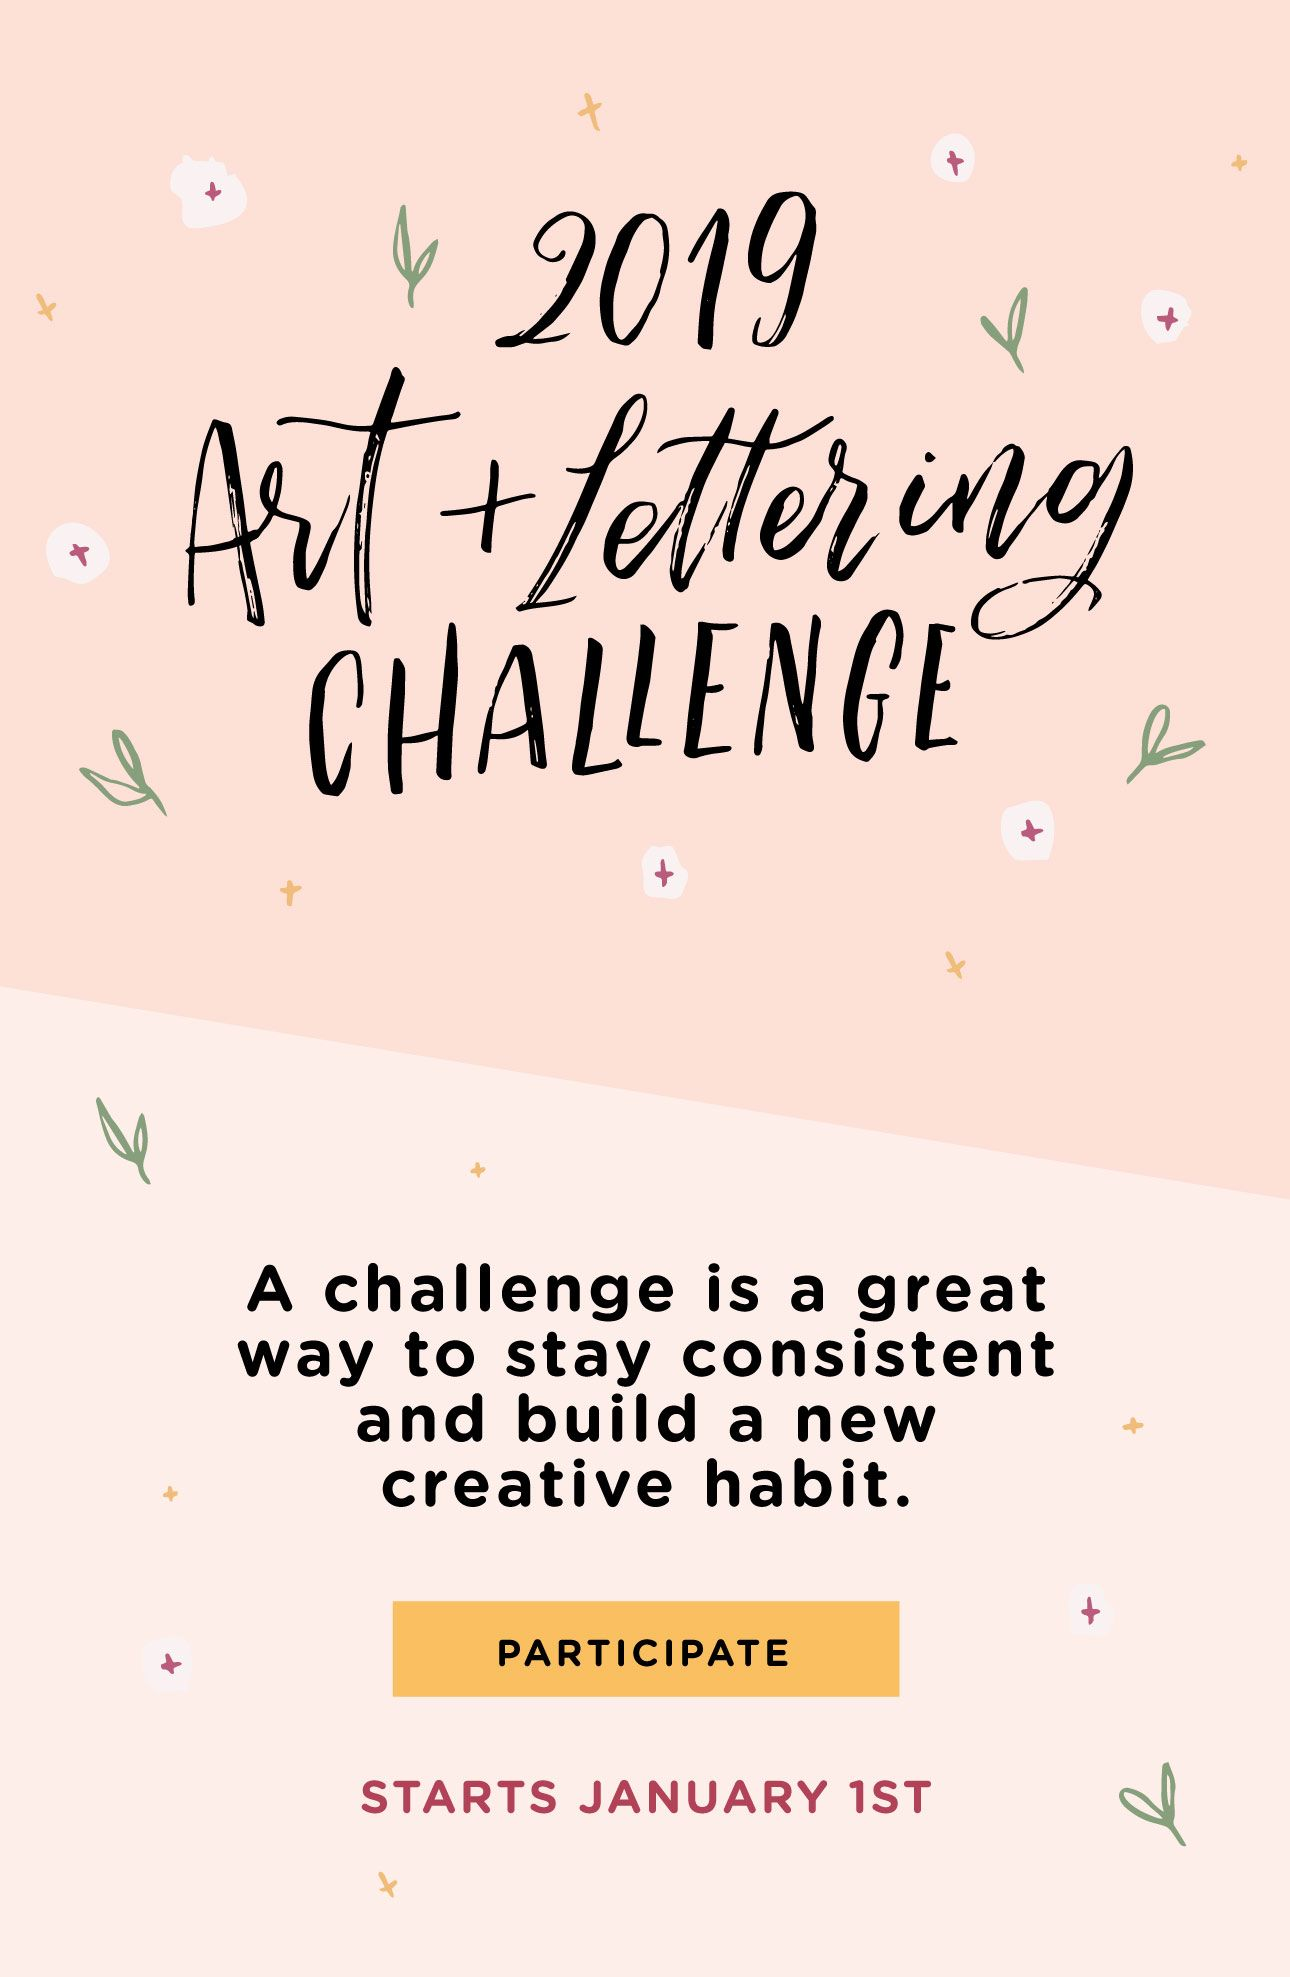 A challenge is a great way to stay consistent and build a